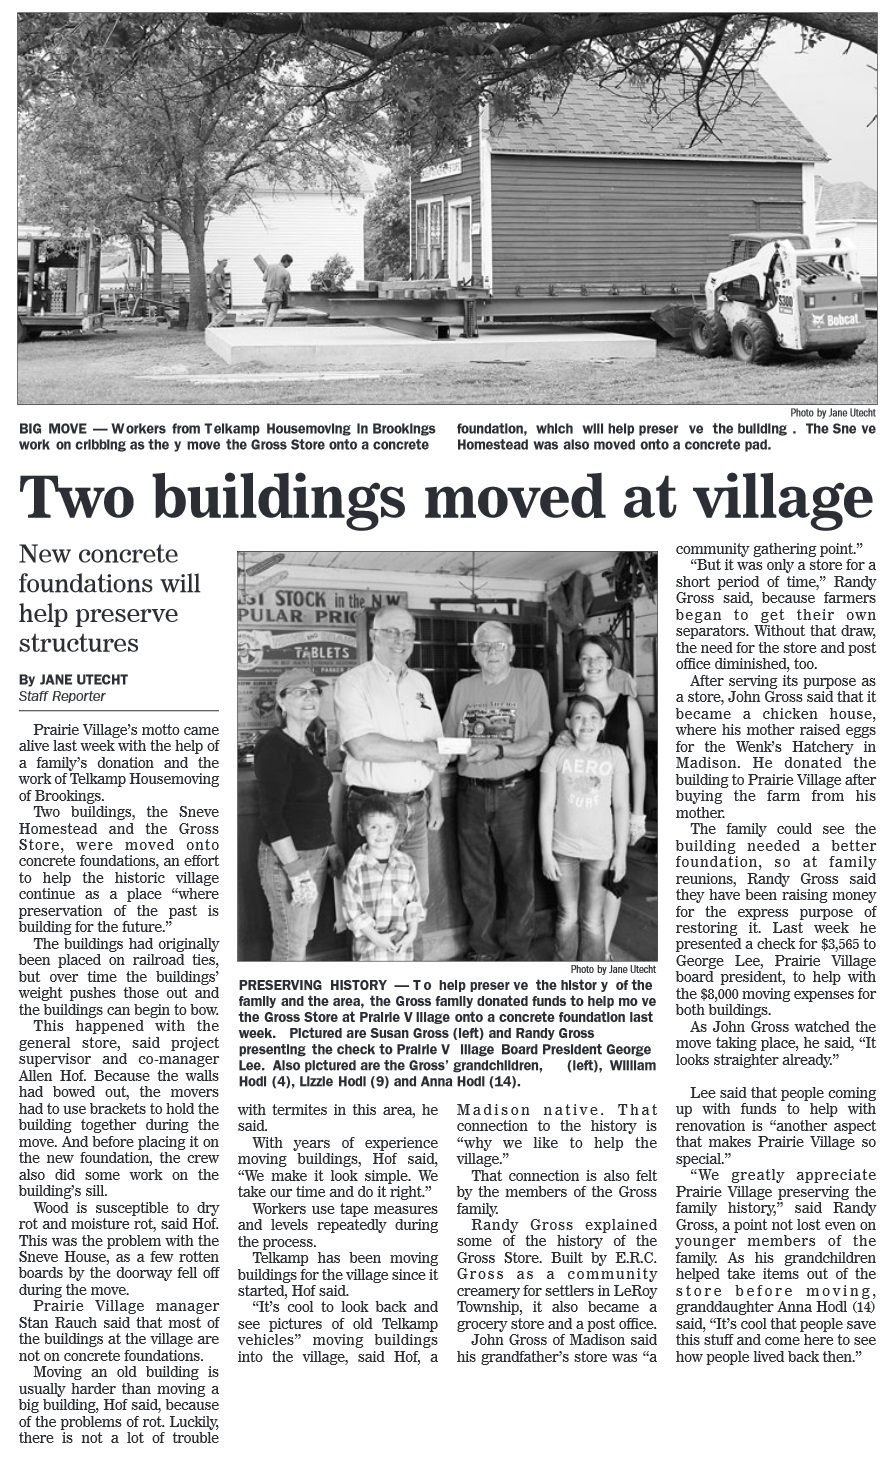 Madison Daily Leader article